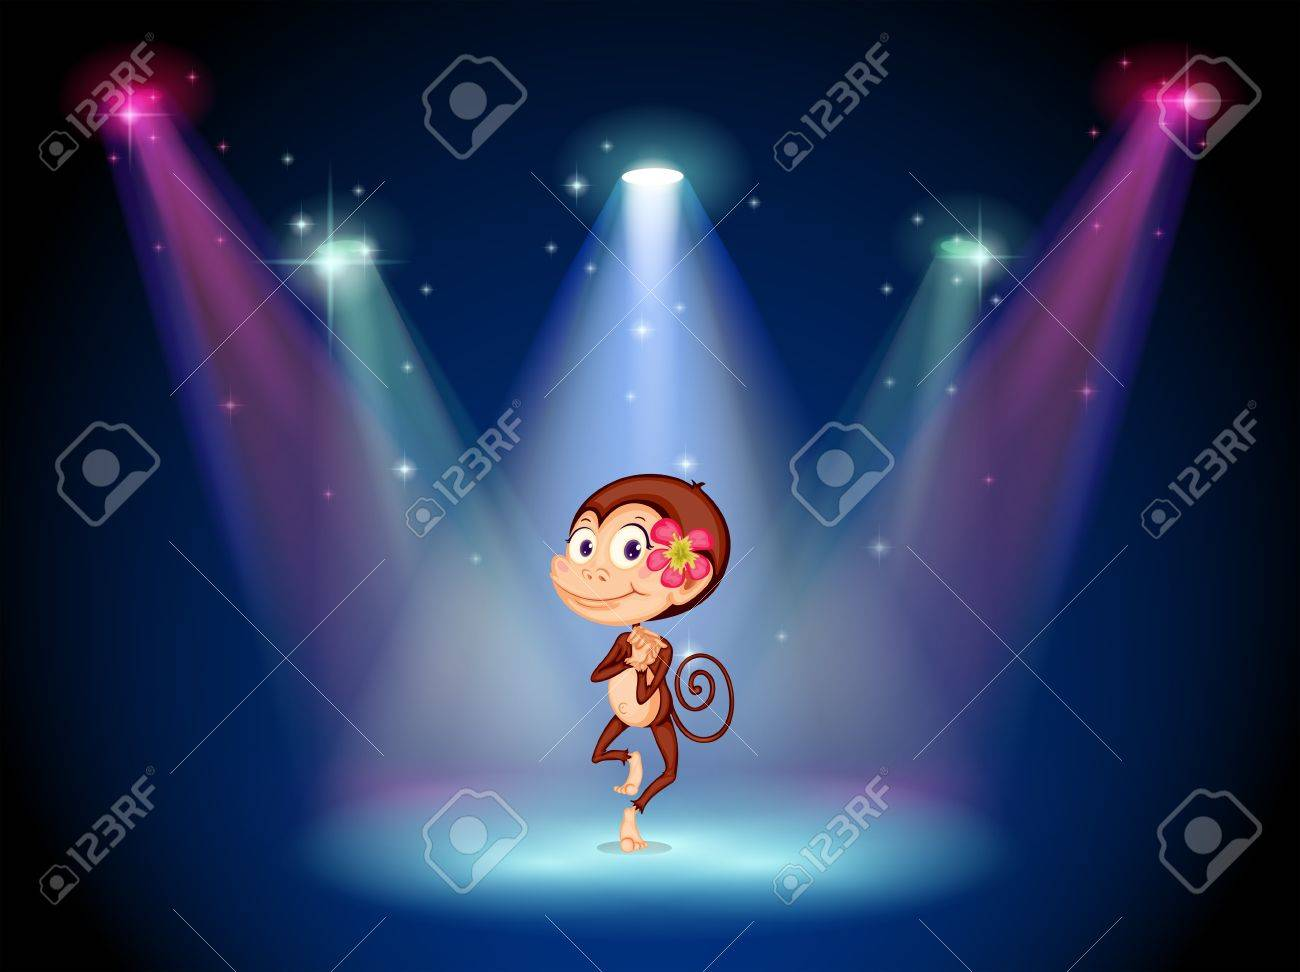 Illustration of a monkey dancing at the center of the stage Stock Vector - 19645339